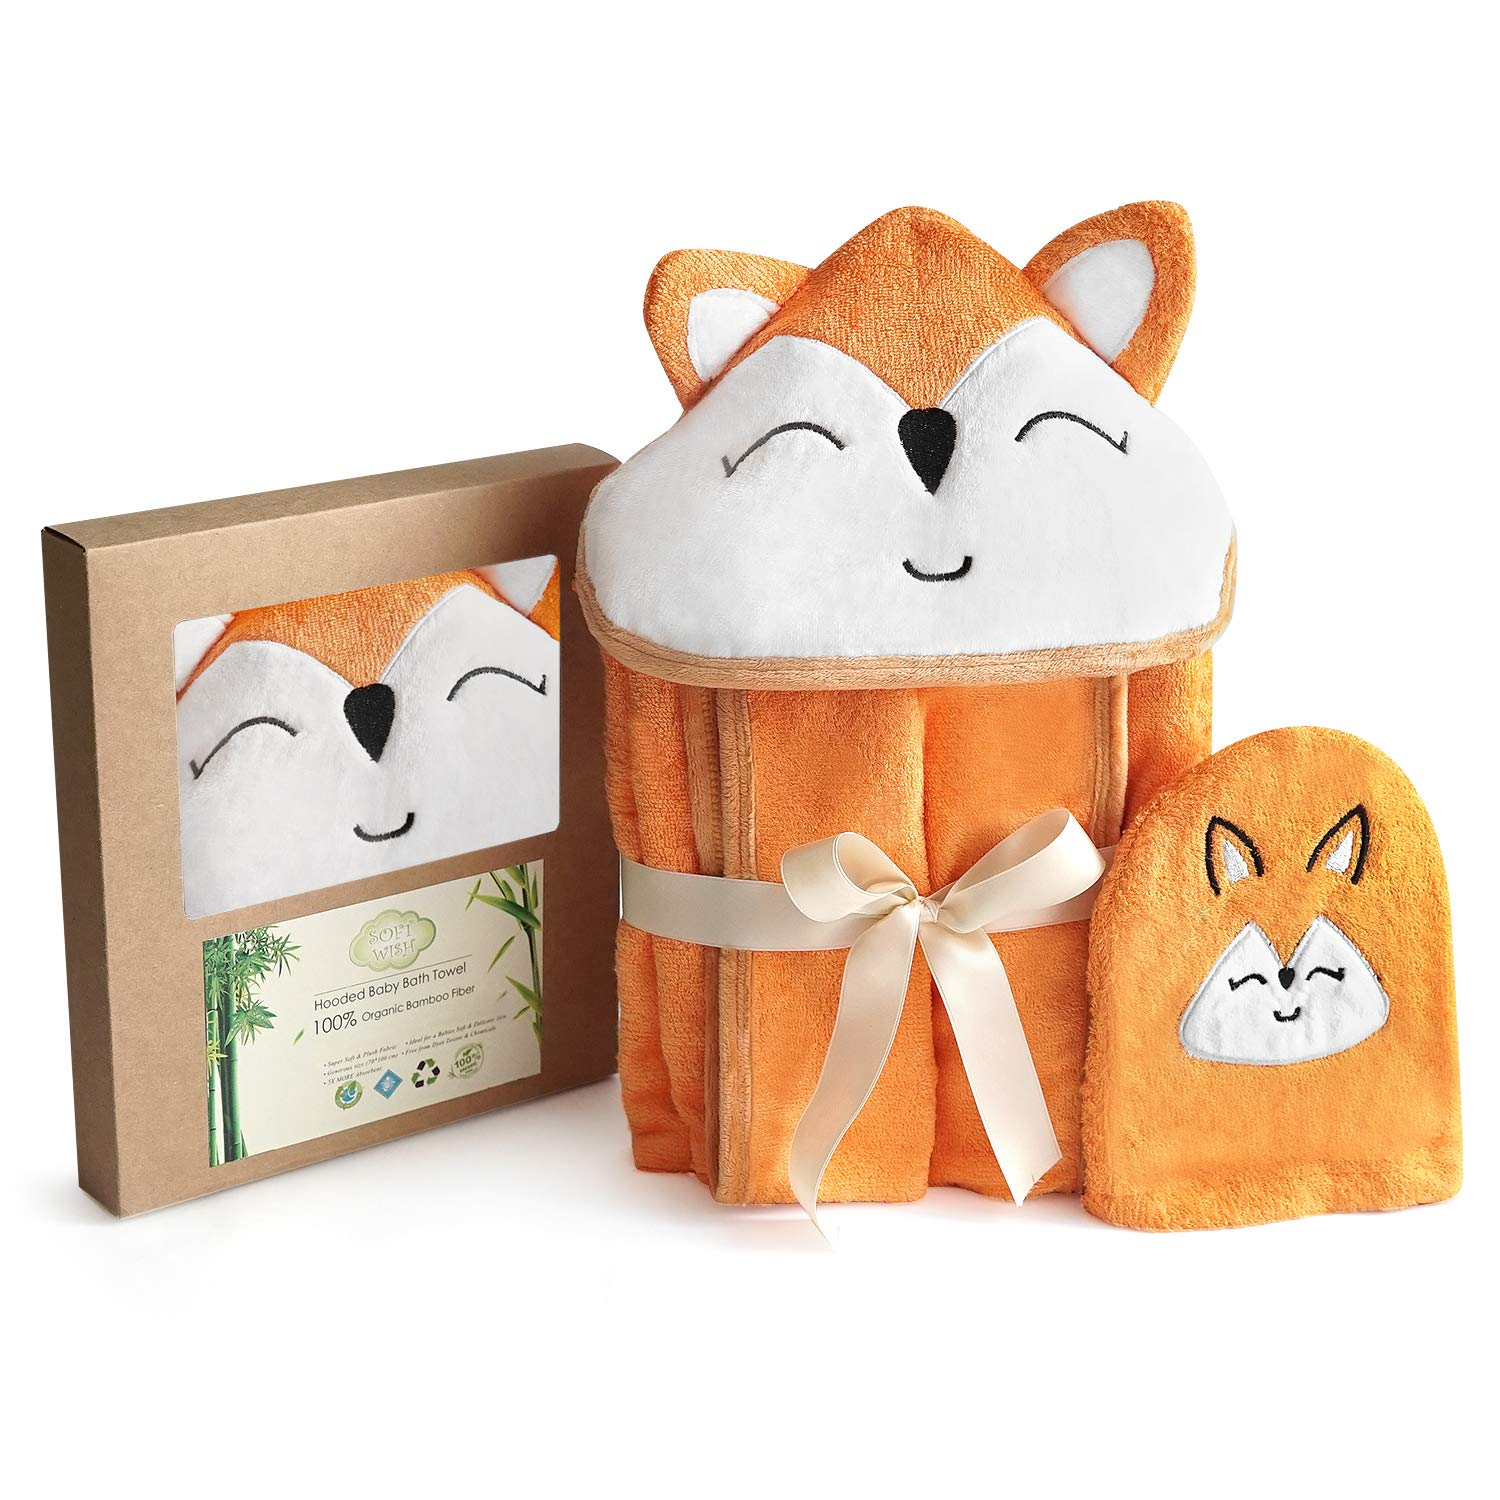 Fox Style Bamboo Baby Hooded Bath Towel & Washing Glove Set - Size 40x28'', Soft and Comfortable, Ultra Absorbent, 100% Natural - Perfect Gift for Baby by Soft Wish